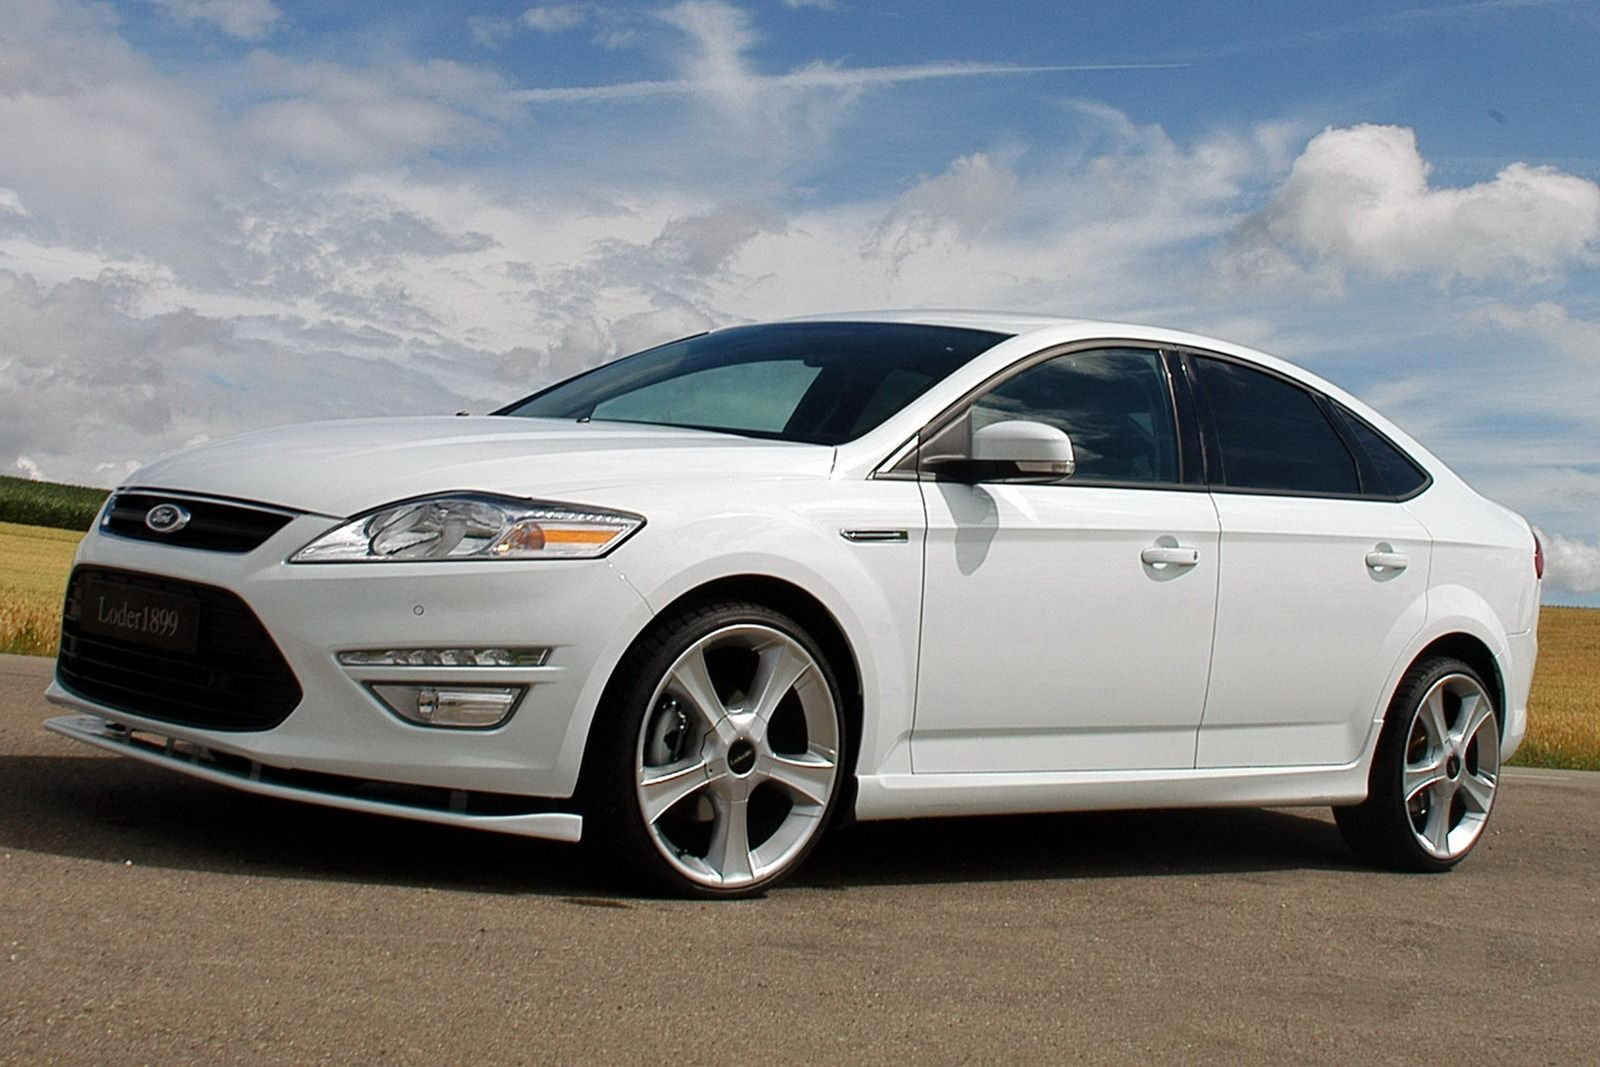 2015 Ford Mondeo Images Of Car Http Wallsauto Com 2015 Ford Mondeo Images Of Car Avtomobili Motocikl Transport